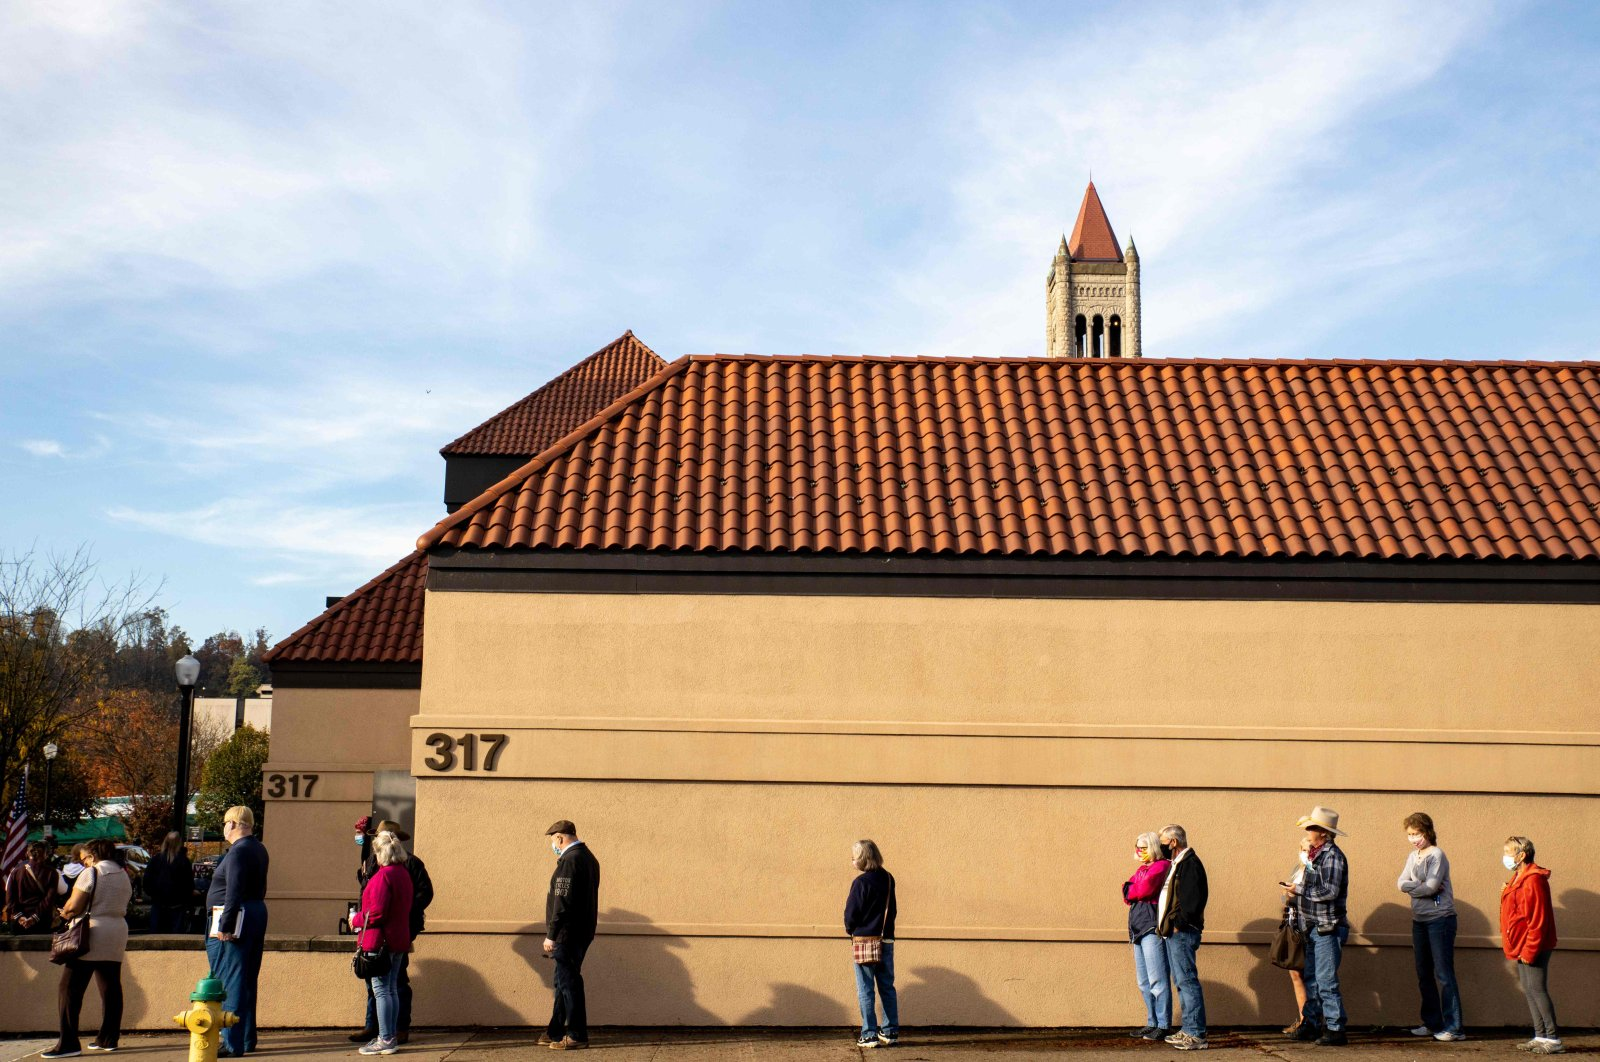 Early voters line up outside of the Judge Black Annex polling location in Parkersburg, West Virginia, Oct. 21, 2020. (AFP Photo)